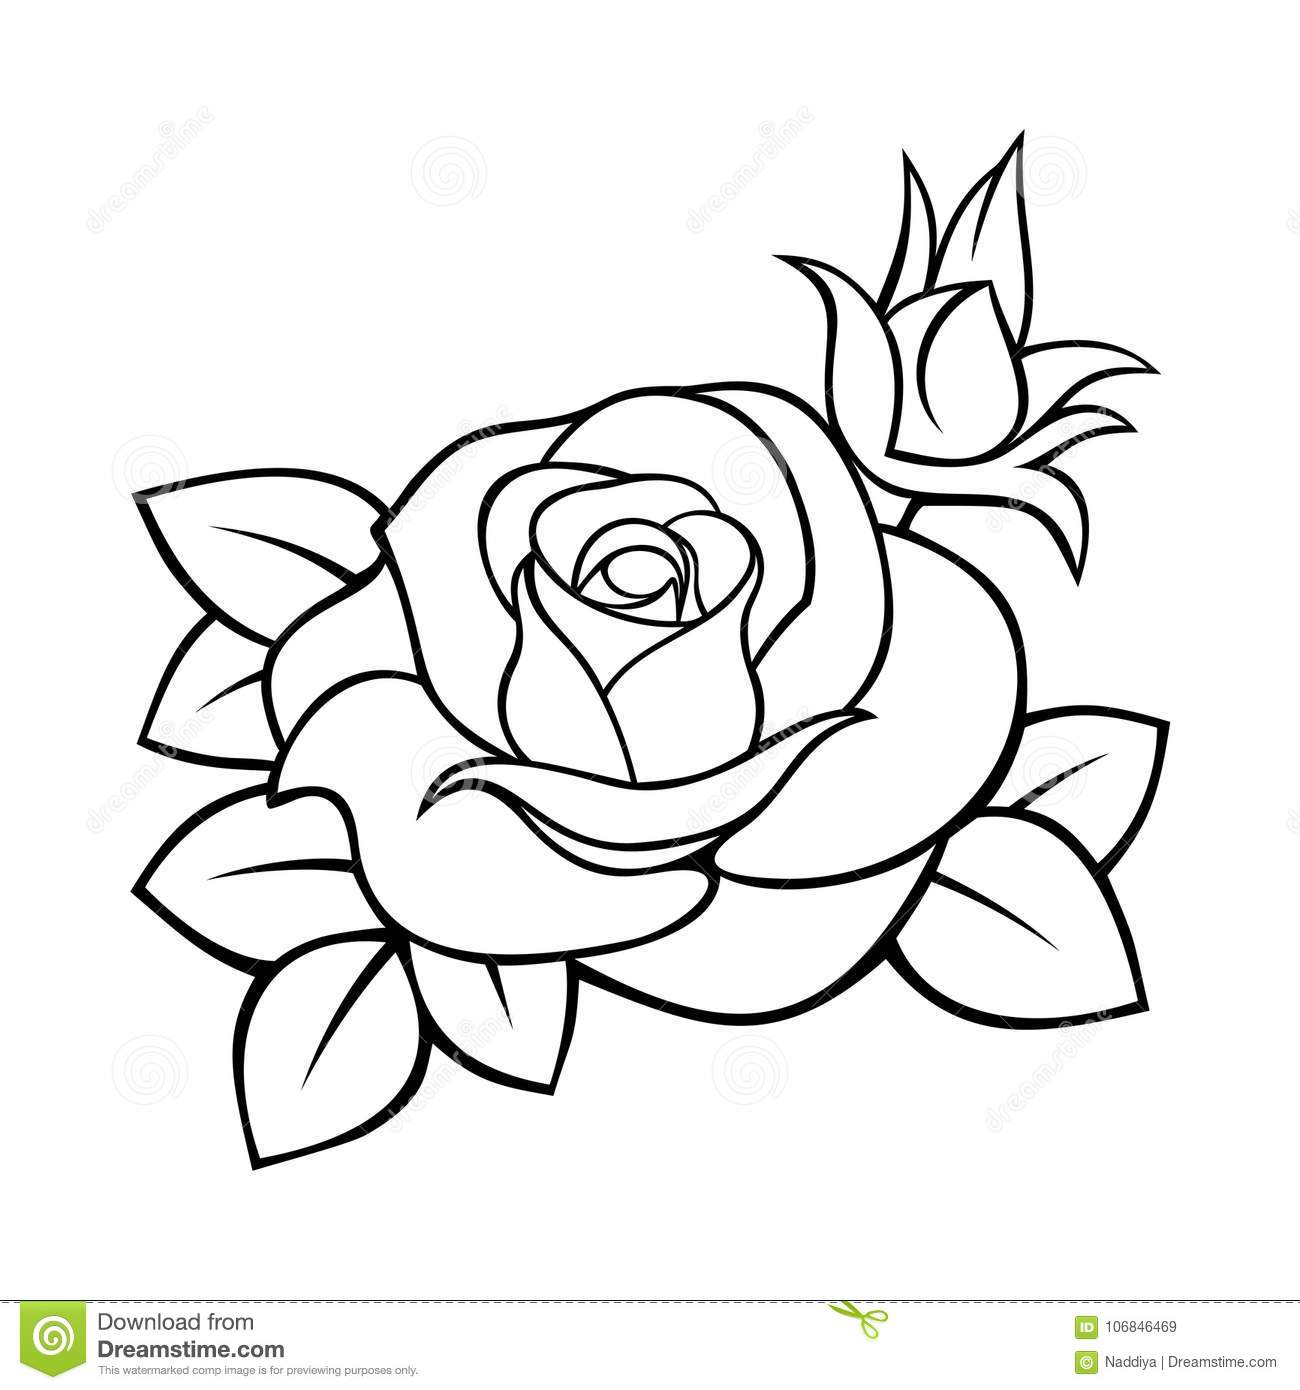 Rose vector black and white contour drawing stock vector rose vector black and white contour drawing mightylinksfo